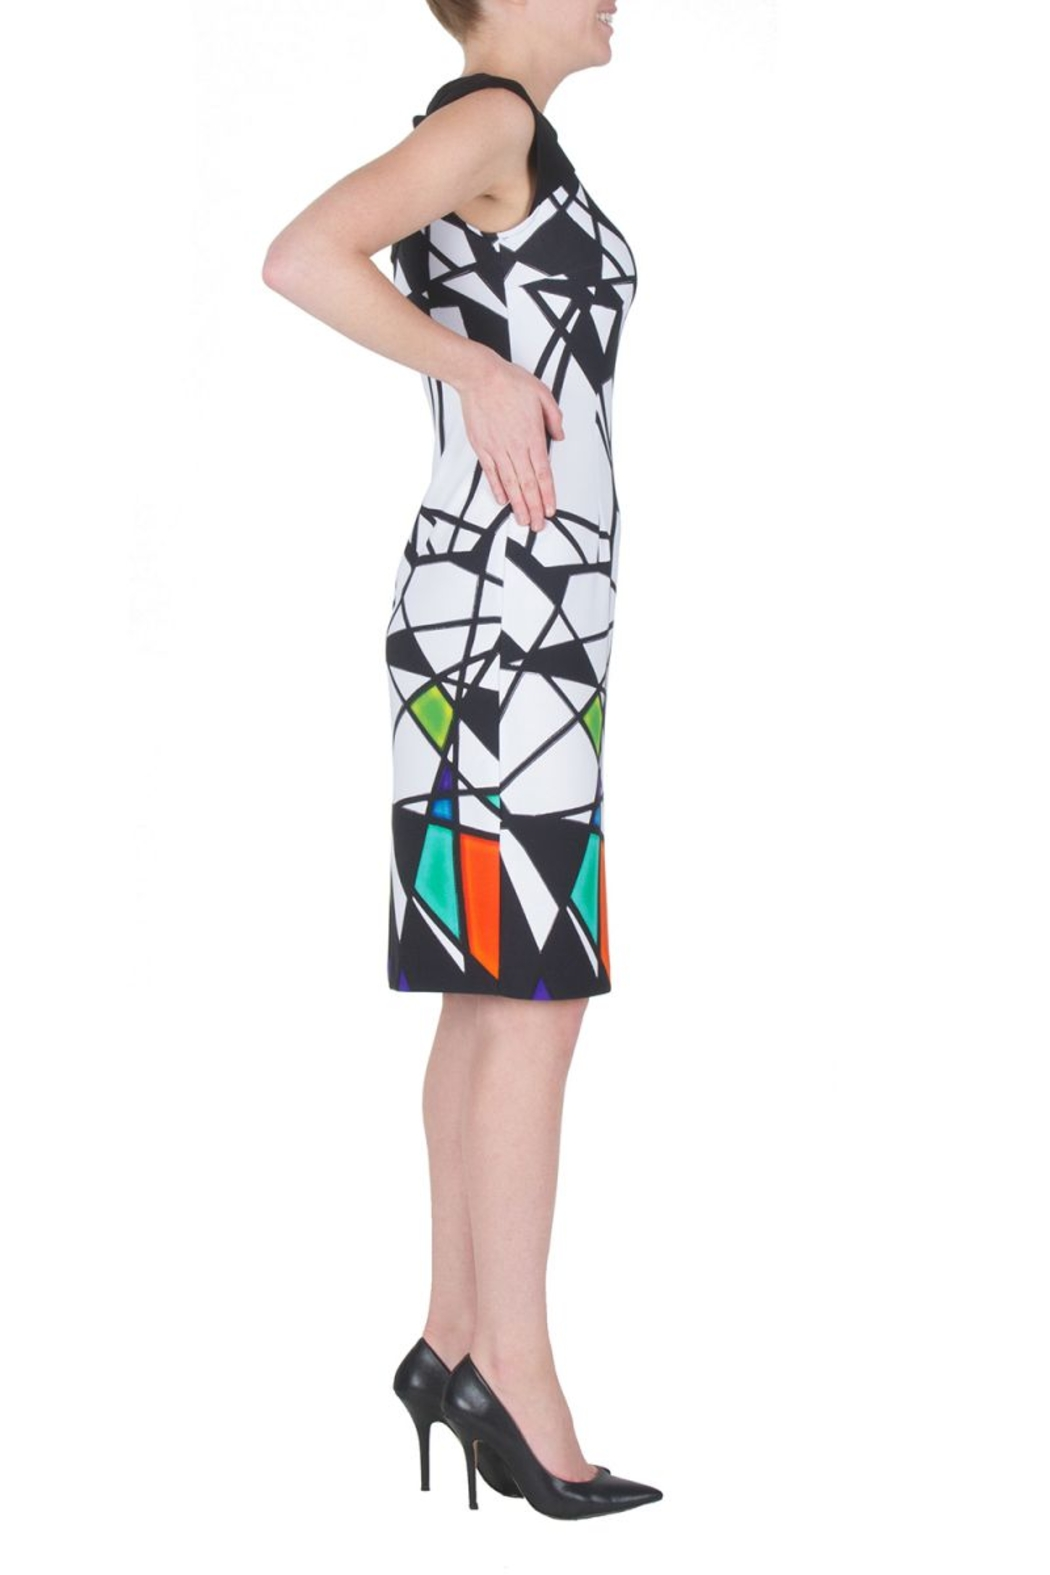 Joseph Ribkoff  Multicolored Abstract Geometric Sleeveless Dress. Bateau neck, golden accents and zip closure. - Front Full Image